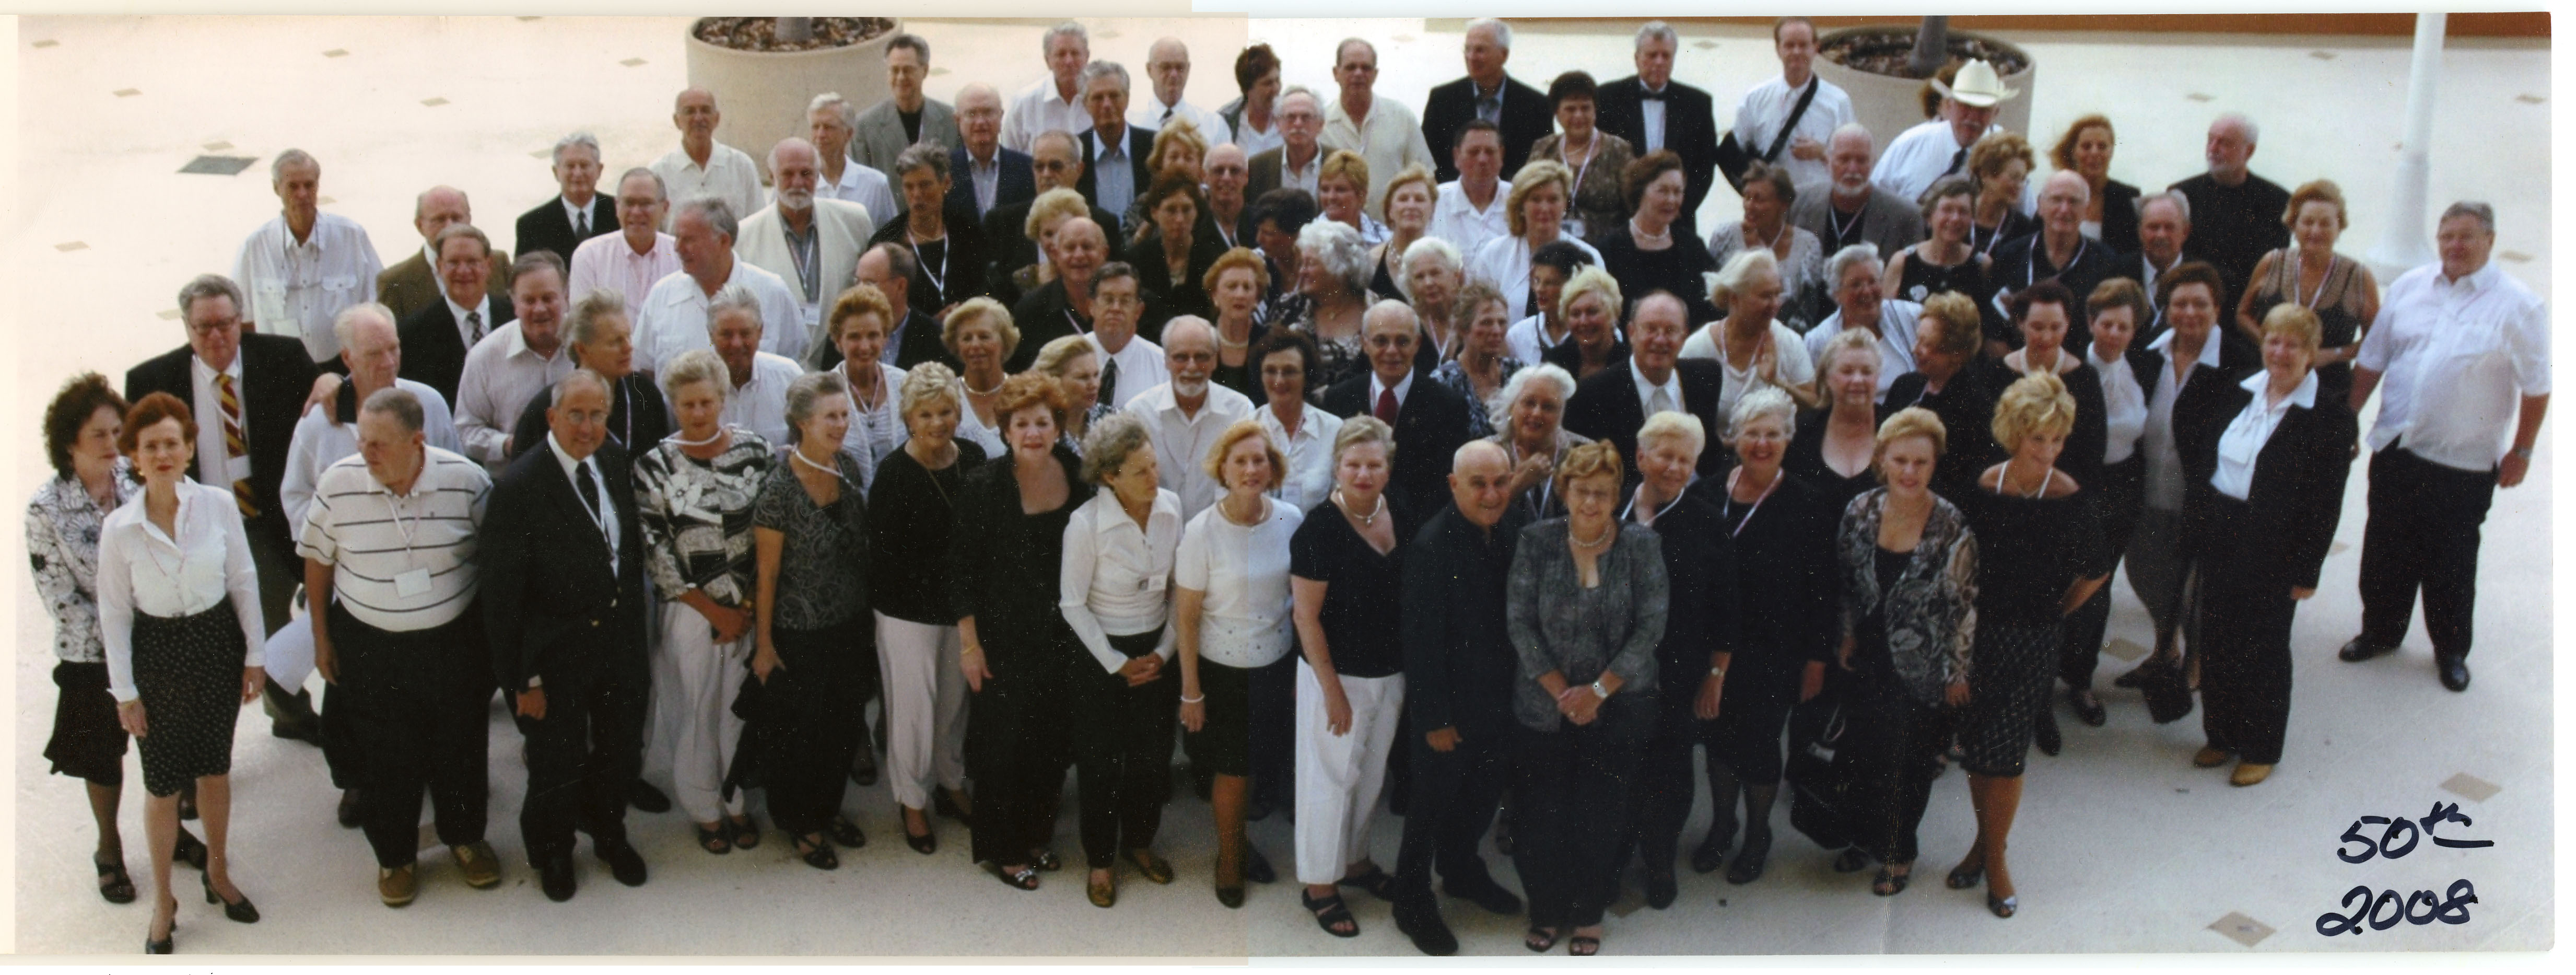 Class_of_58_50th_Reunion_Group_Photo.jpg